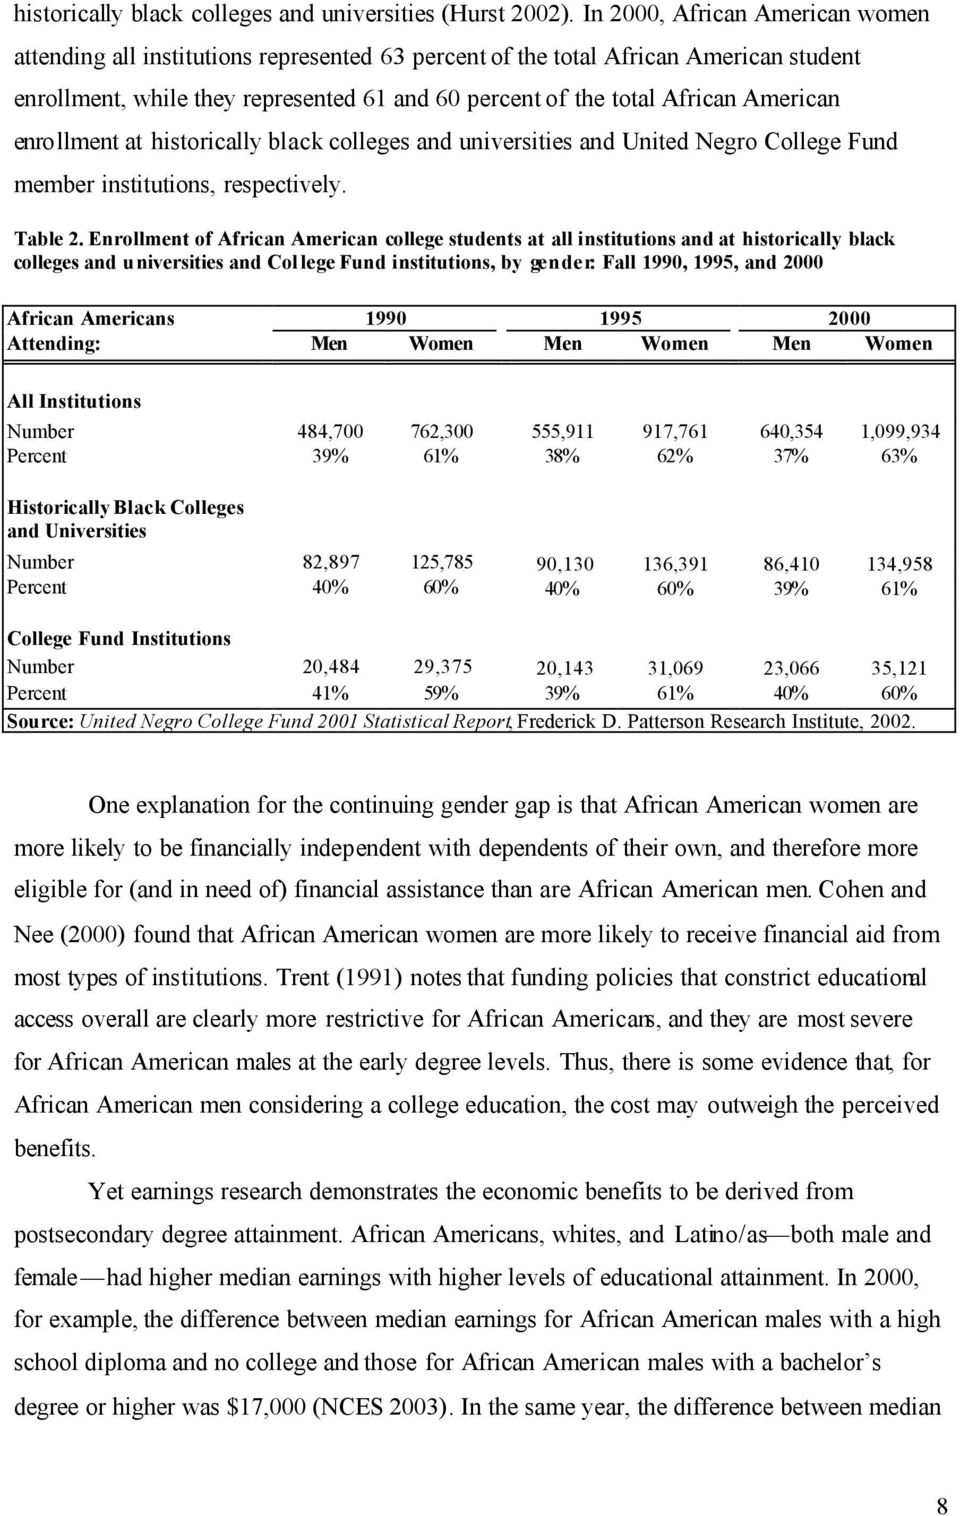 American enrollment at historically black colleges and universities and United Negro College Fund member institutions, respectively. Table 2.